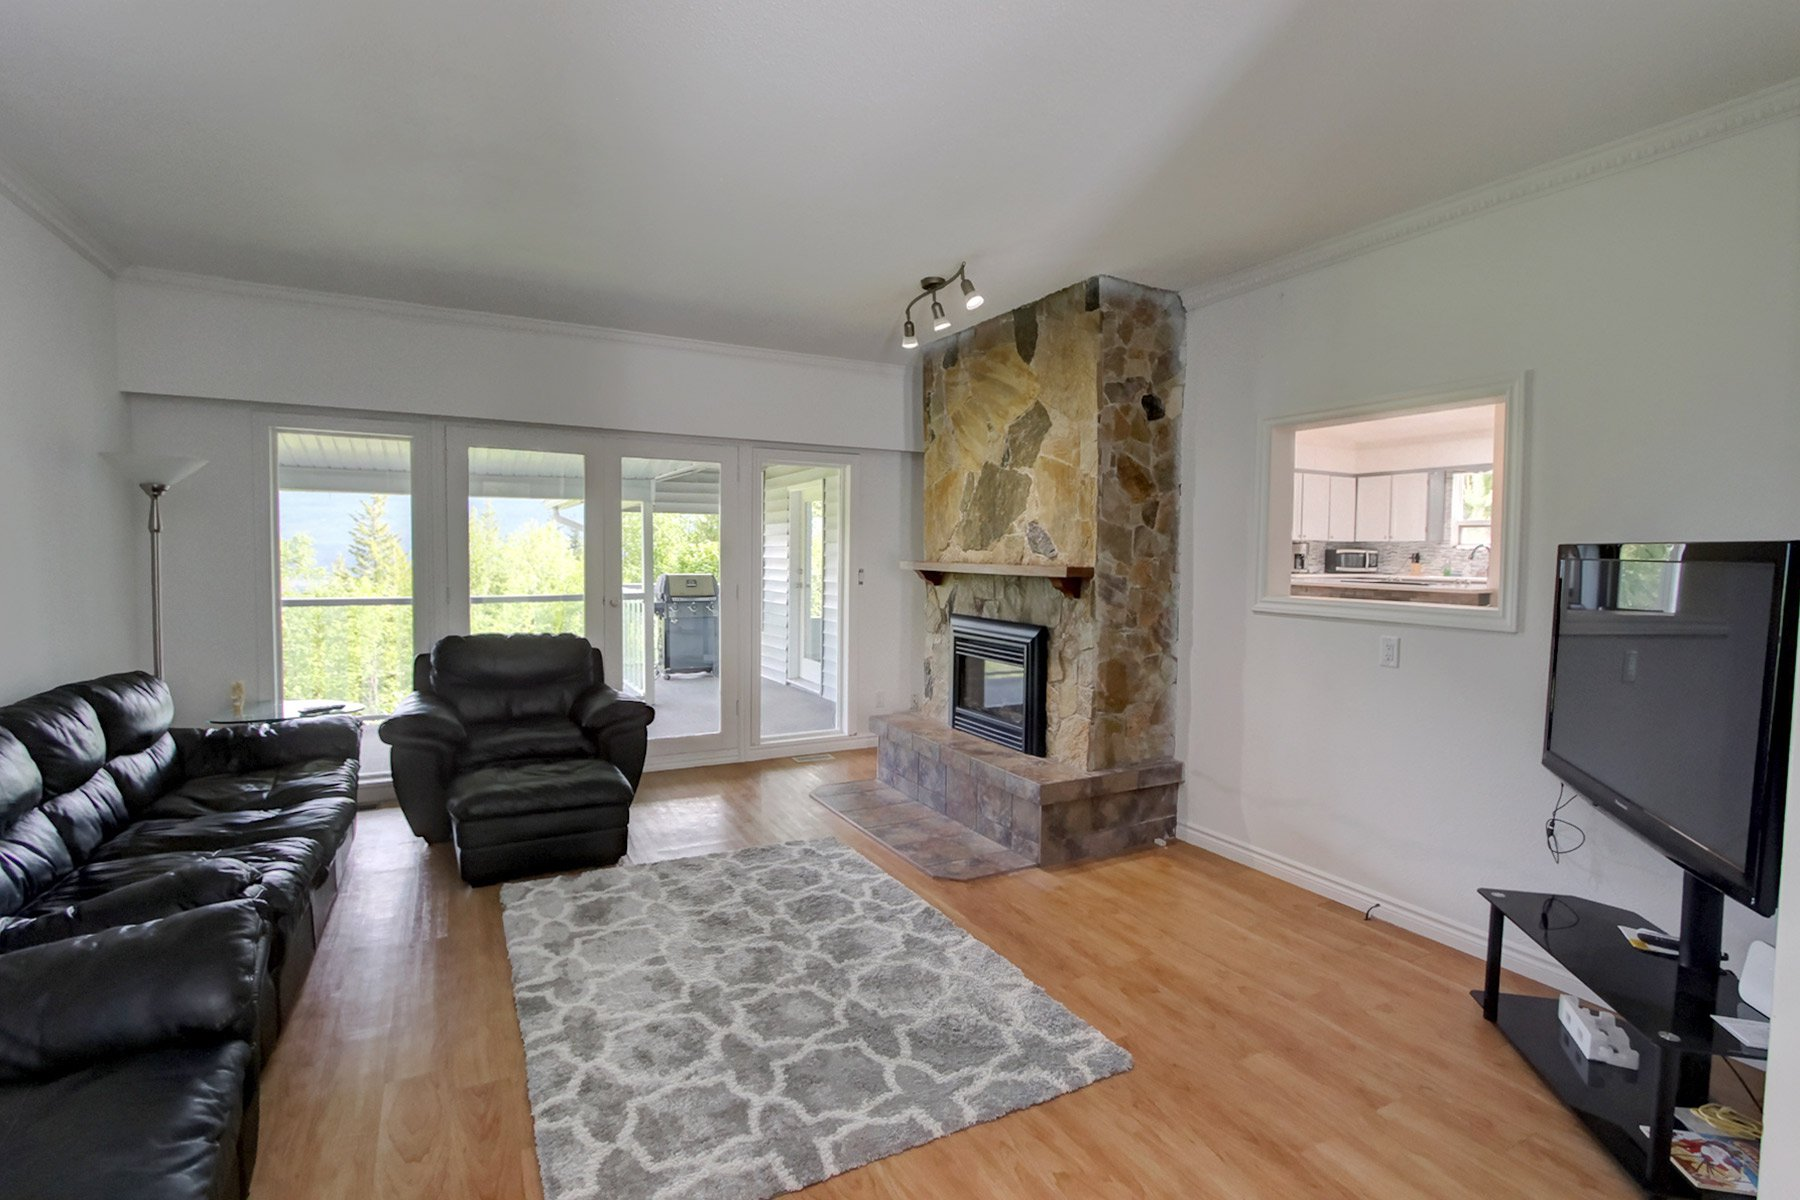 Photo 21: Photos: 6831 Magna Bay Drive in Magna Bay: House with Acreage for sale : MLS®# 10205520